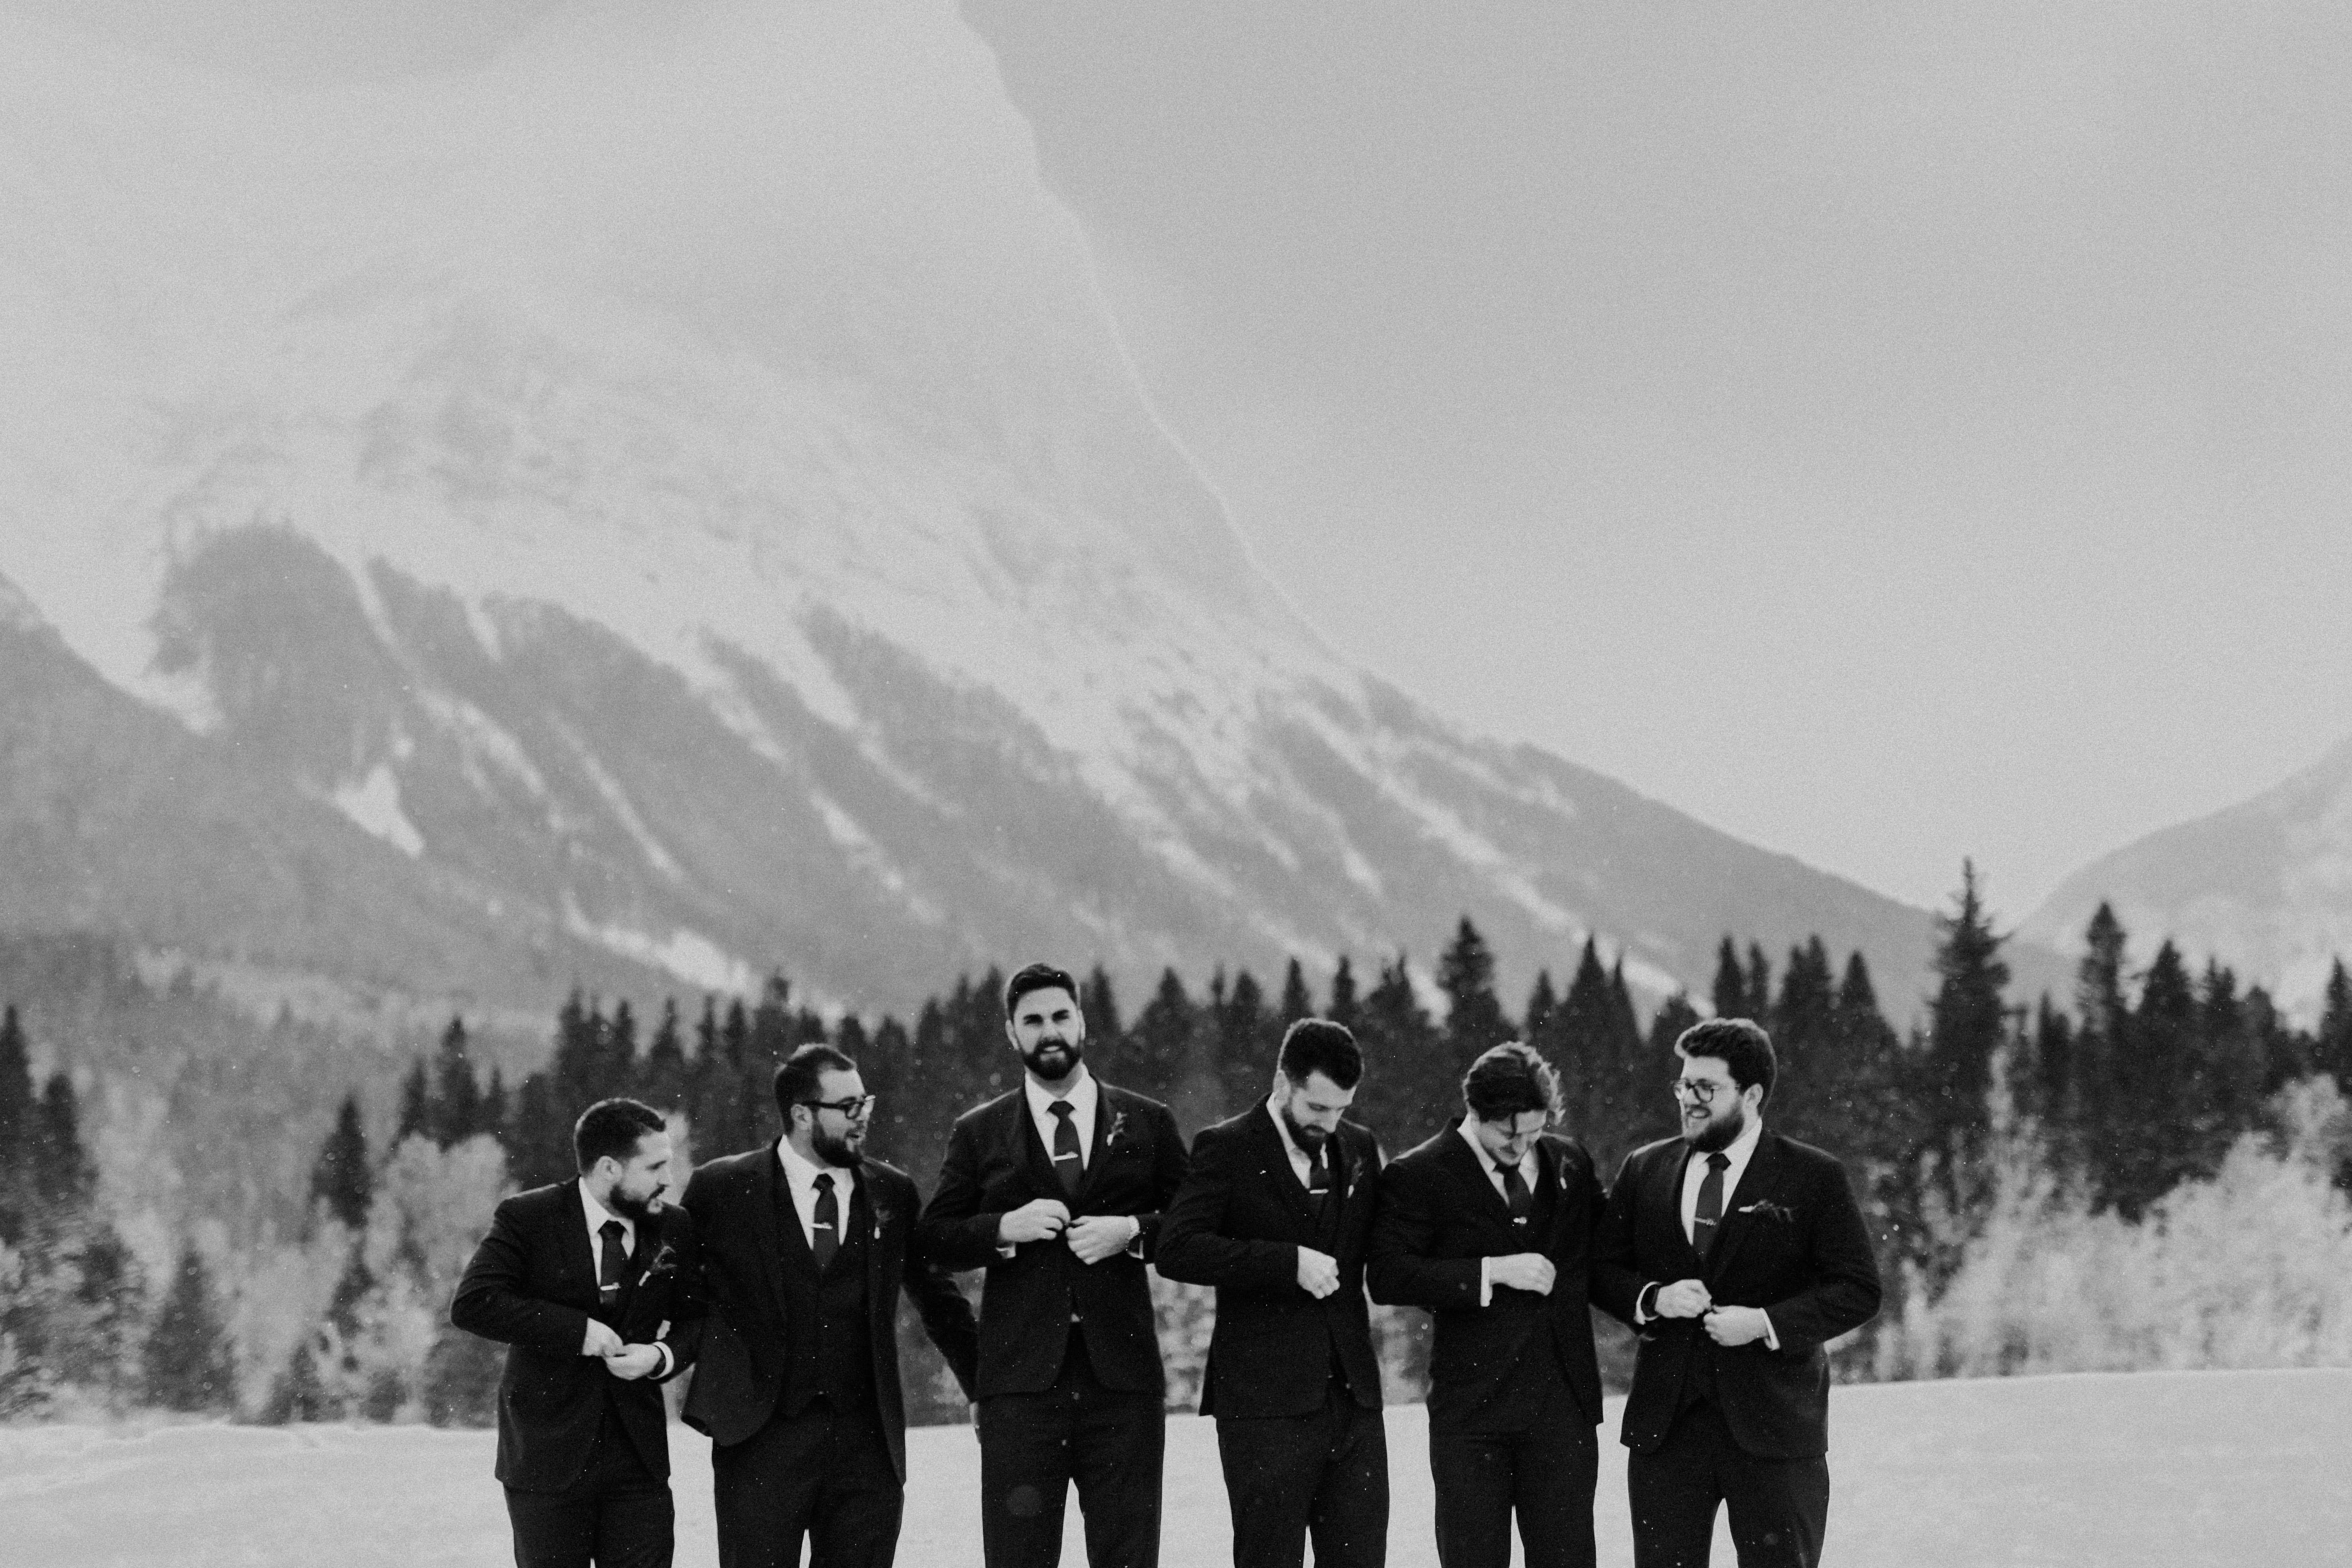 Banff Wedding - Groomsmen in the snow